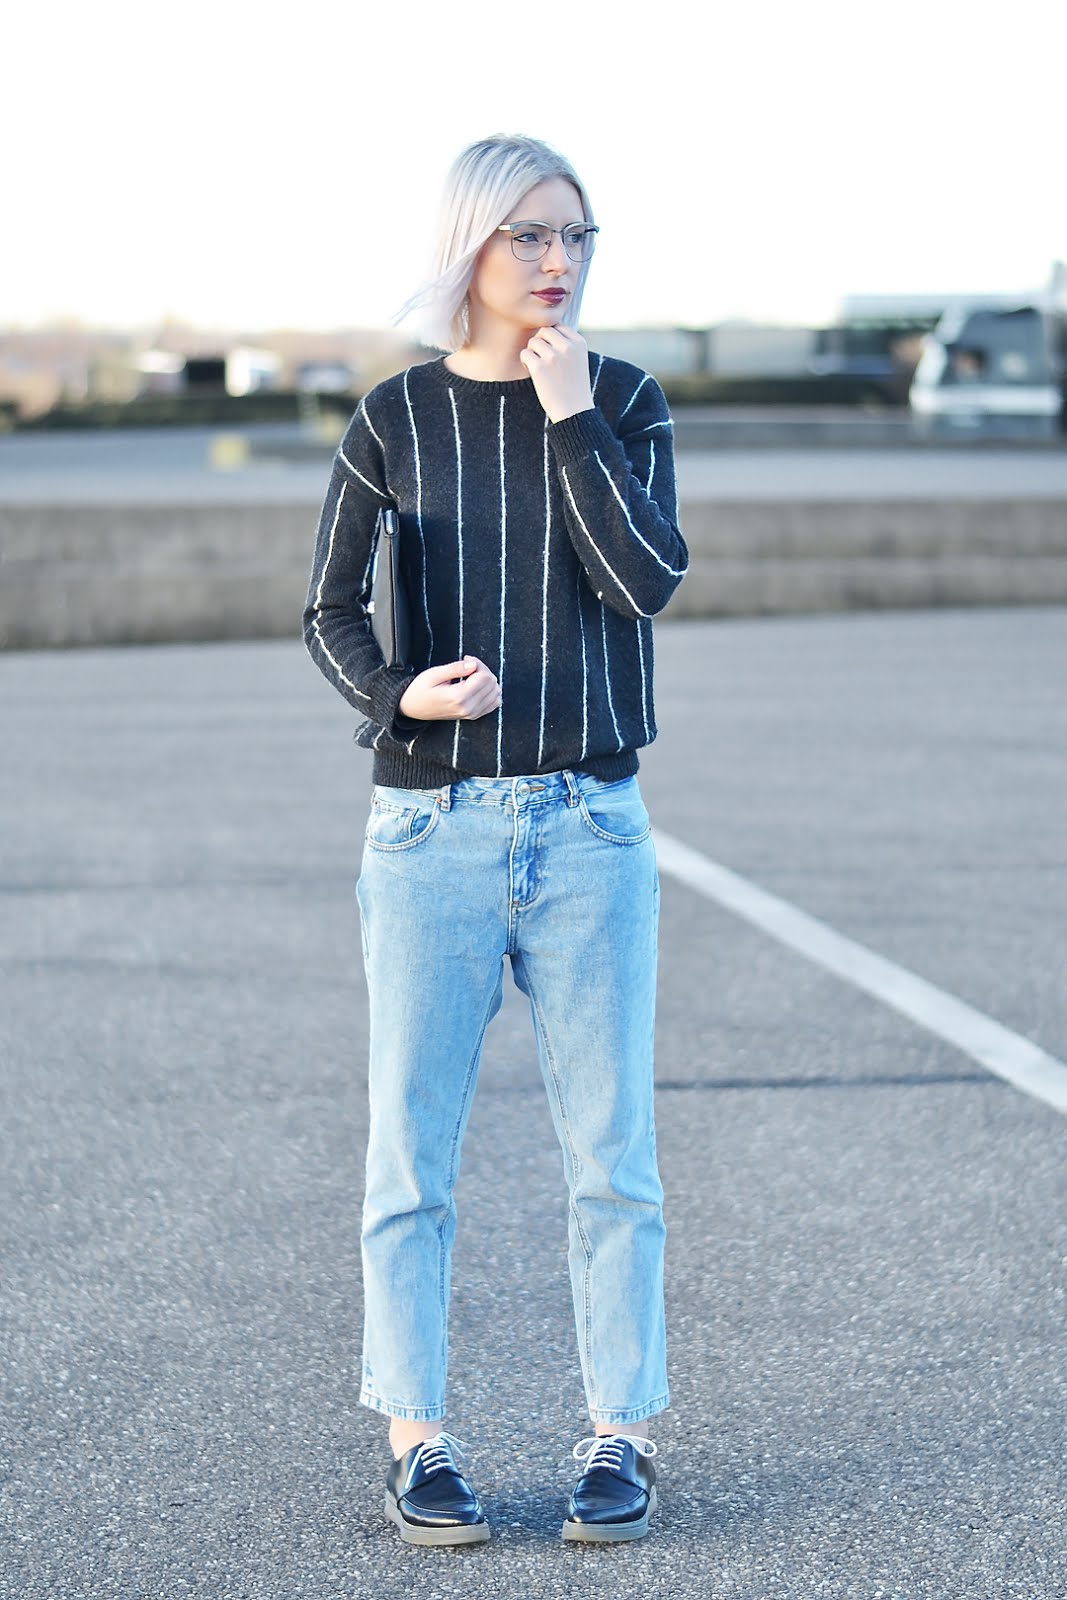 Pinstripe, mango, pull and bear, girlfriend jeans, brogues, transparent, outfit, belgian blogger, belgische mode blogger, trends, monster clutch, esprit, normcore, street style